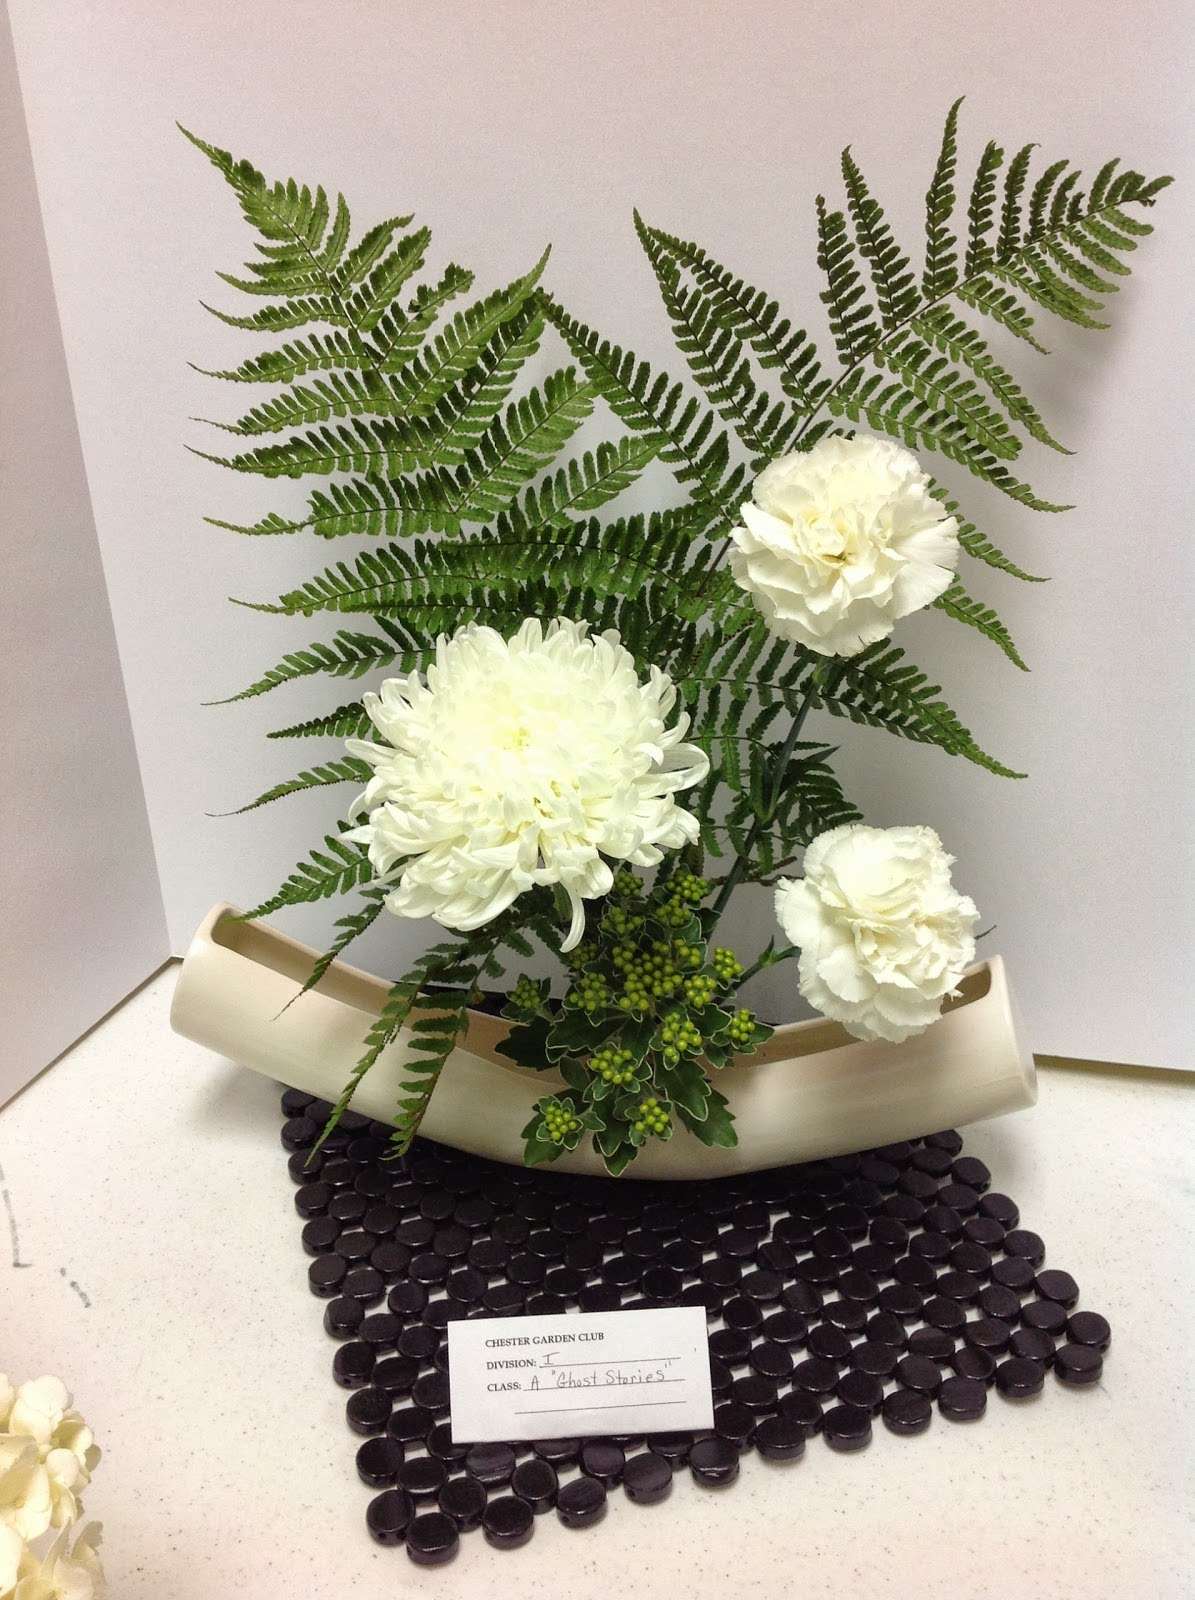 New Garden Club Journal Floral Design Containers Matter